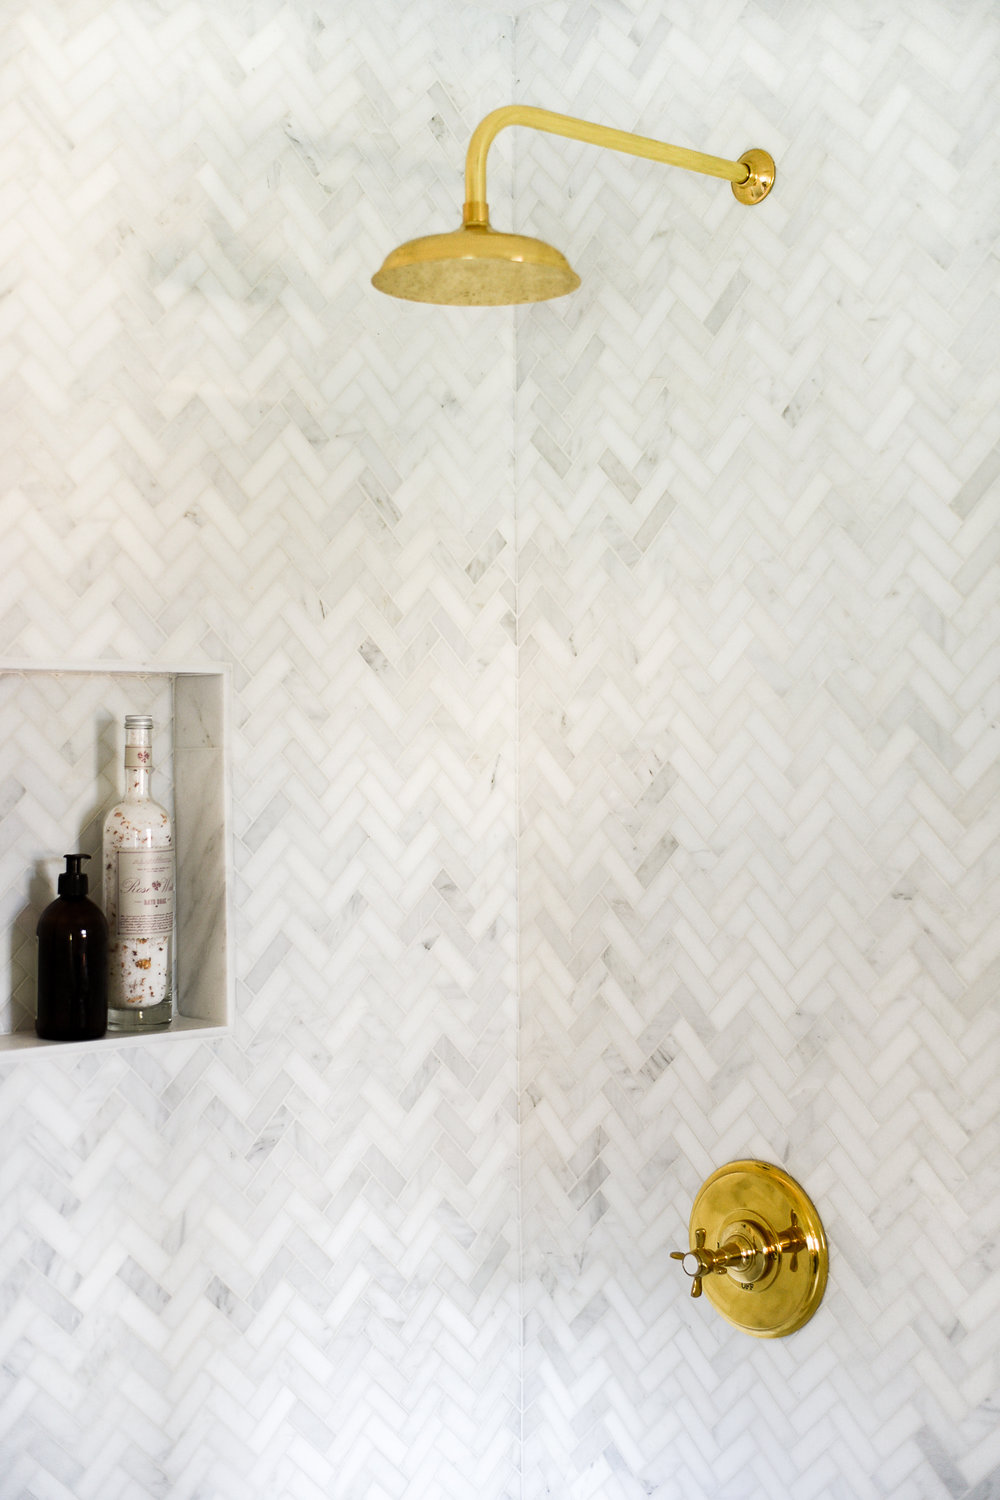 Herringbone Marble Walk-In Shower with Brass Hardware | boxwoodavenue.com